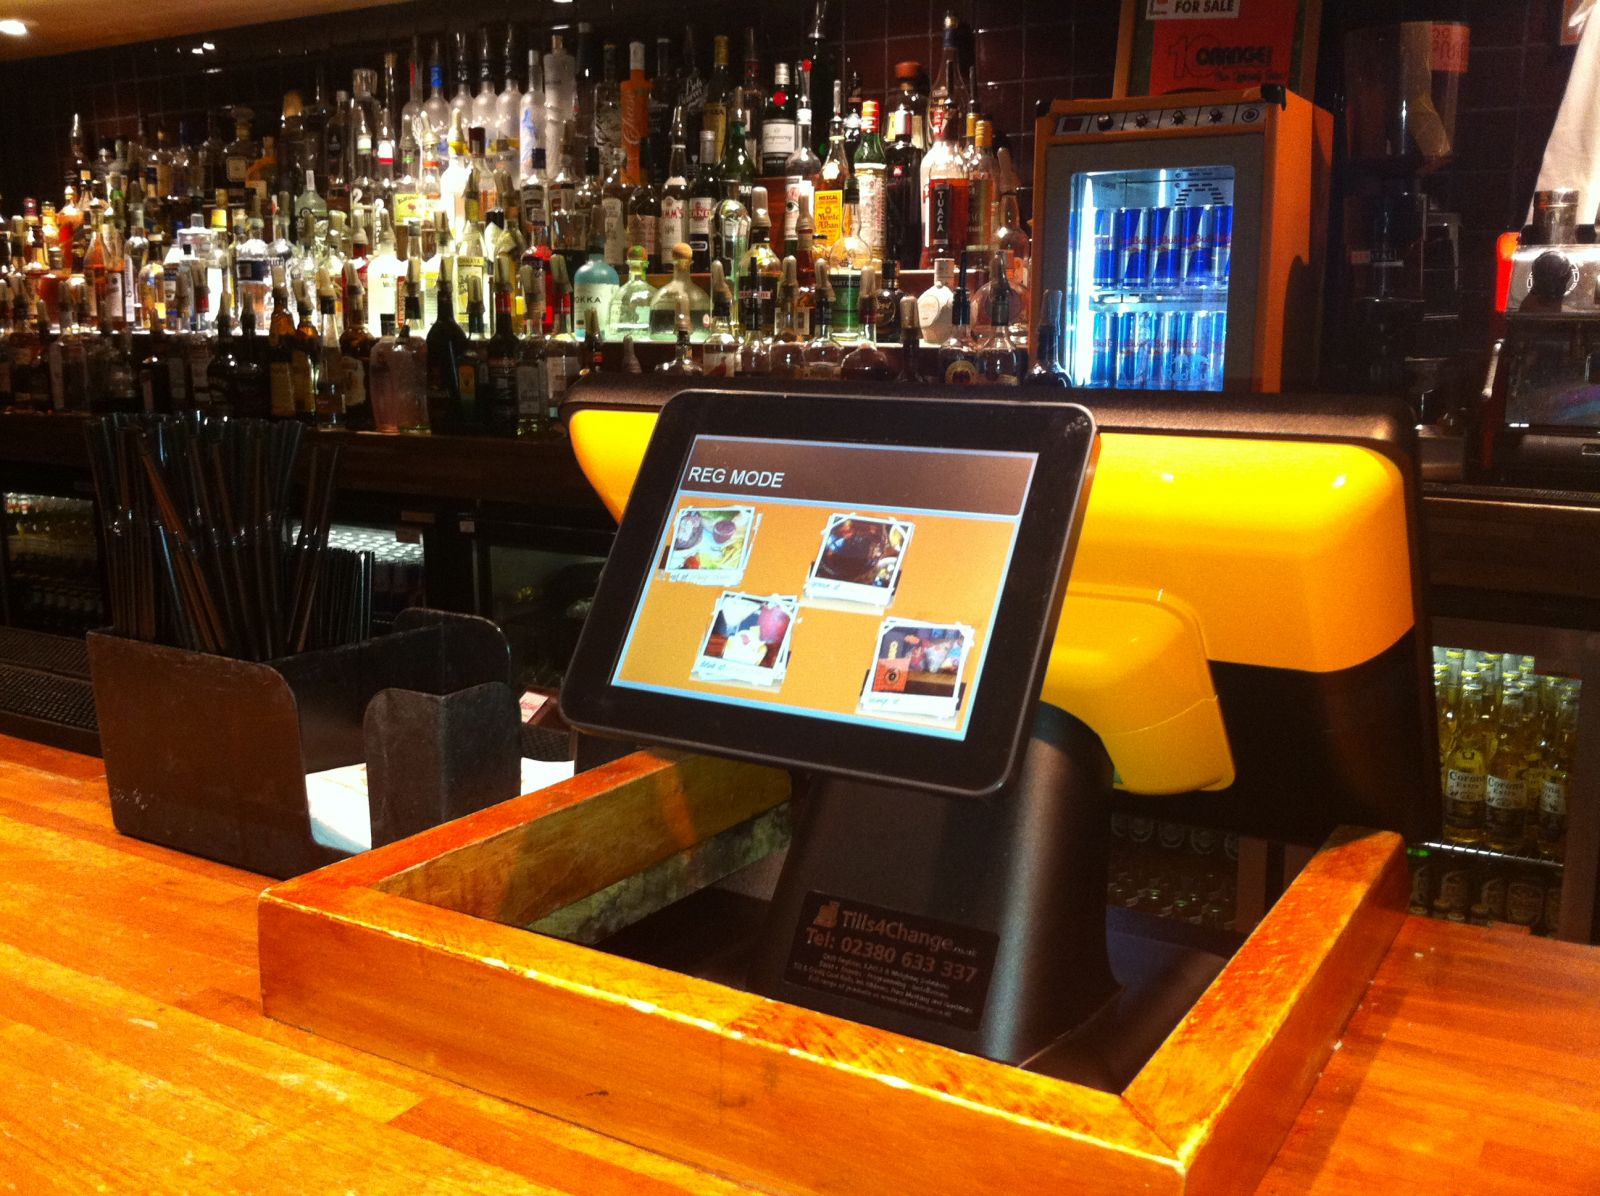 Poindus VariPoS 715 with VGA Customer Display supplied by Tills4Change